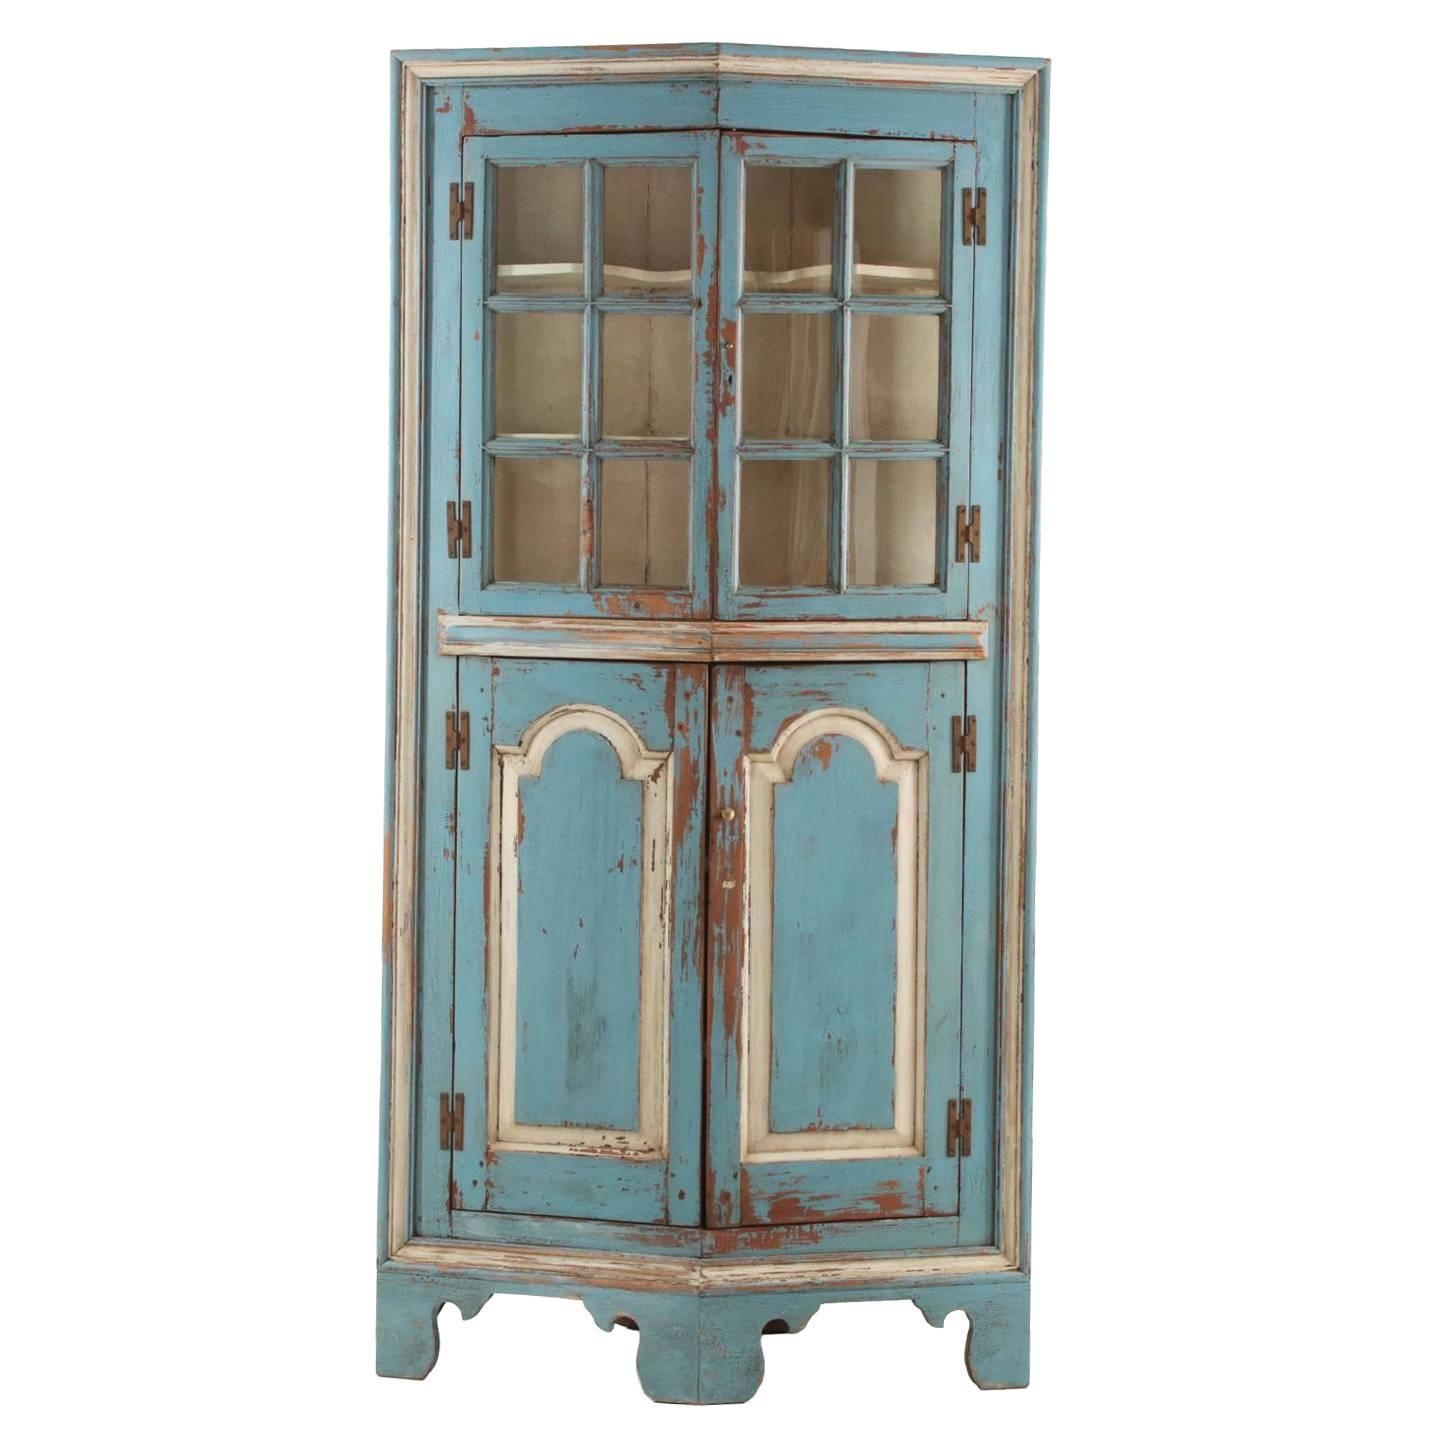 19th Century American Blue Painted Corner Cabinet in Eastern Shore style at  1stdibs - 19th Century American Blue Painted Corner Cabinet In Eastern Shore